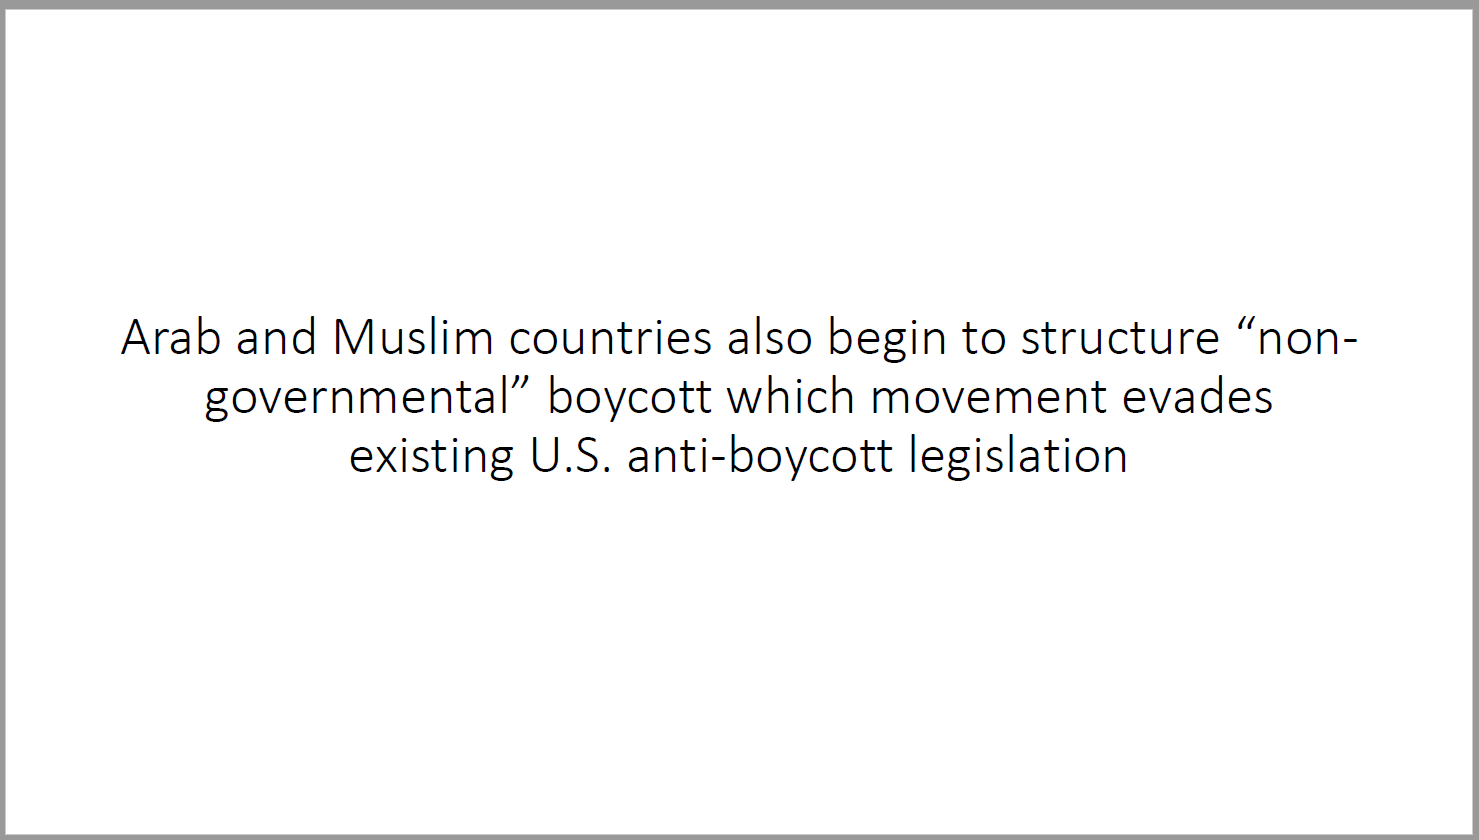 bds-history-slide-arab-league-boycott-restructured-as-non-governmental